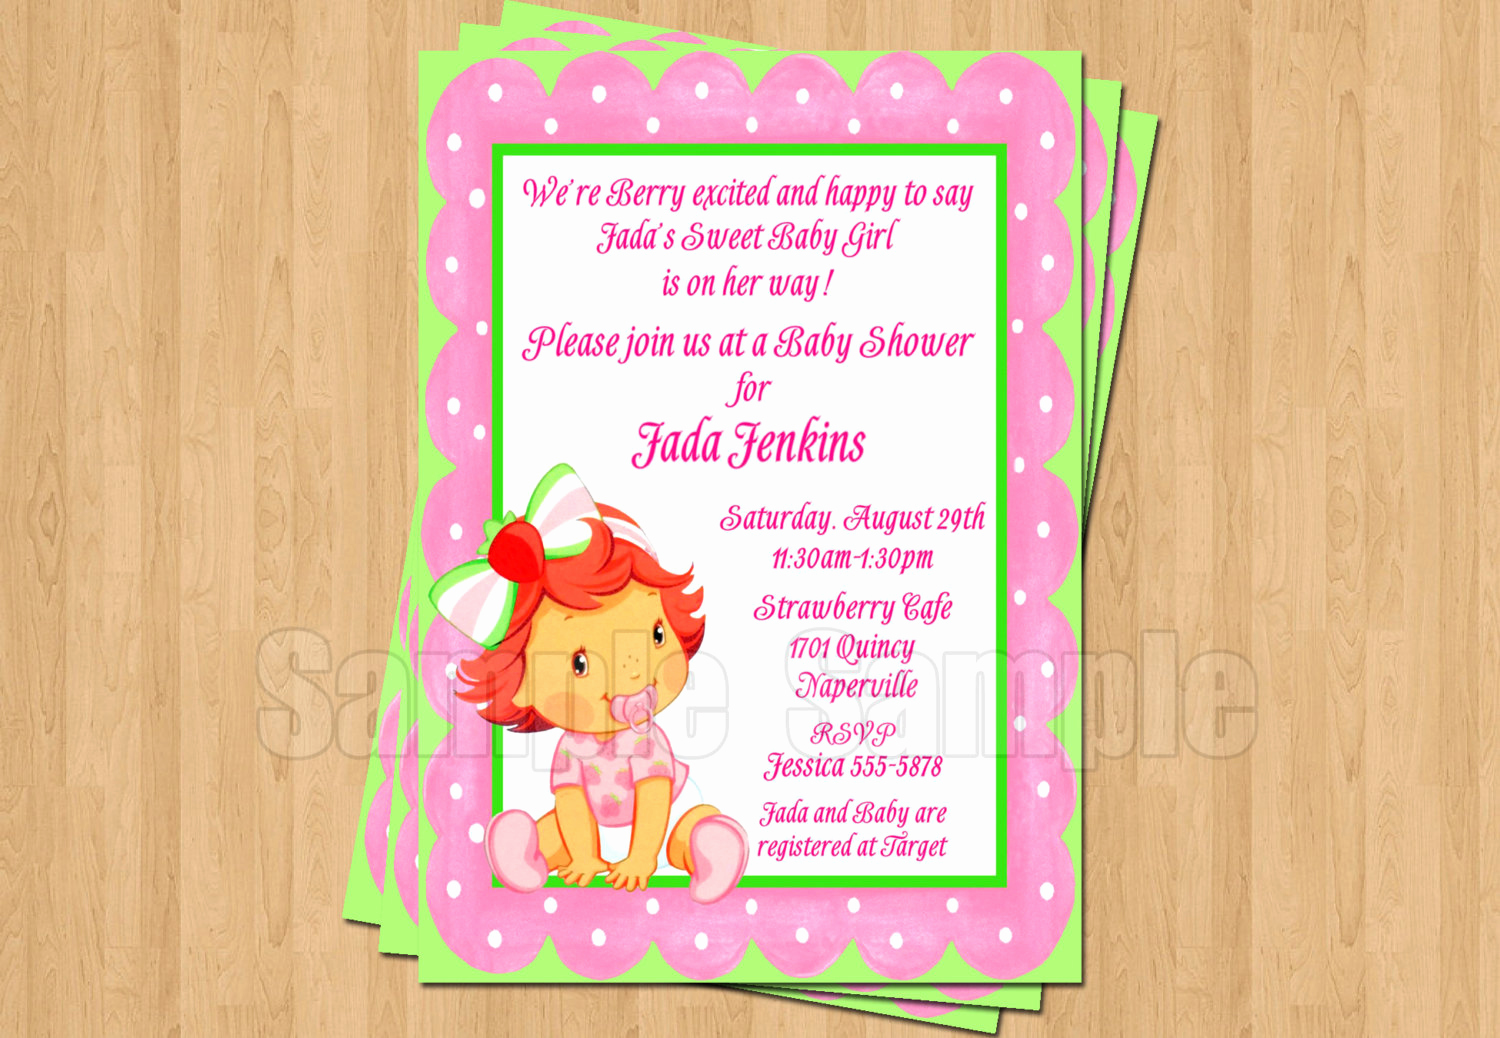 Strawberry Shortcake Invitation Templates Awesome Strawberry Shortcake Baby Shower Invitations Jpeg Cute Unique